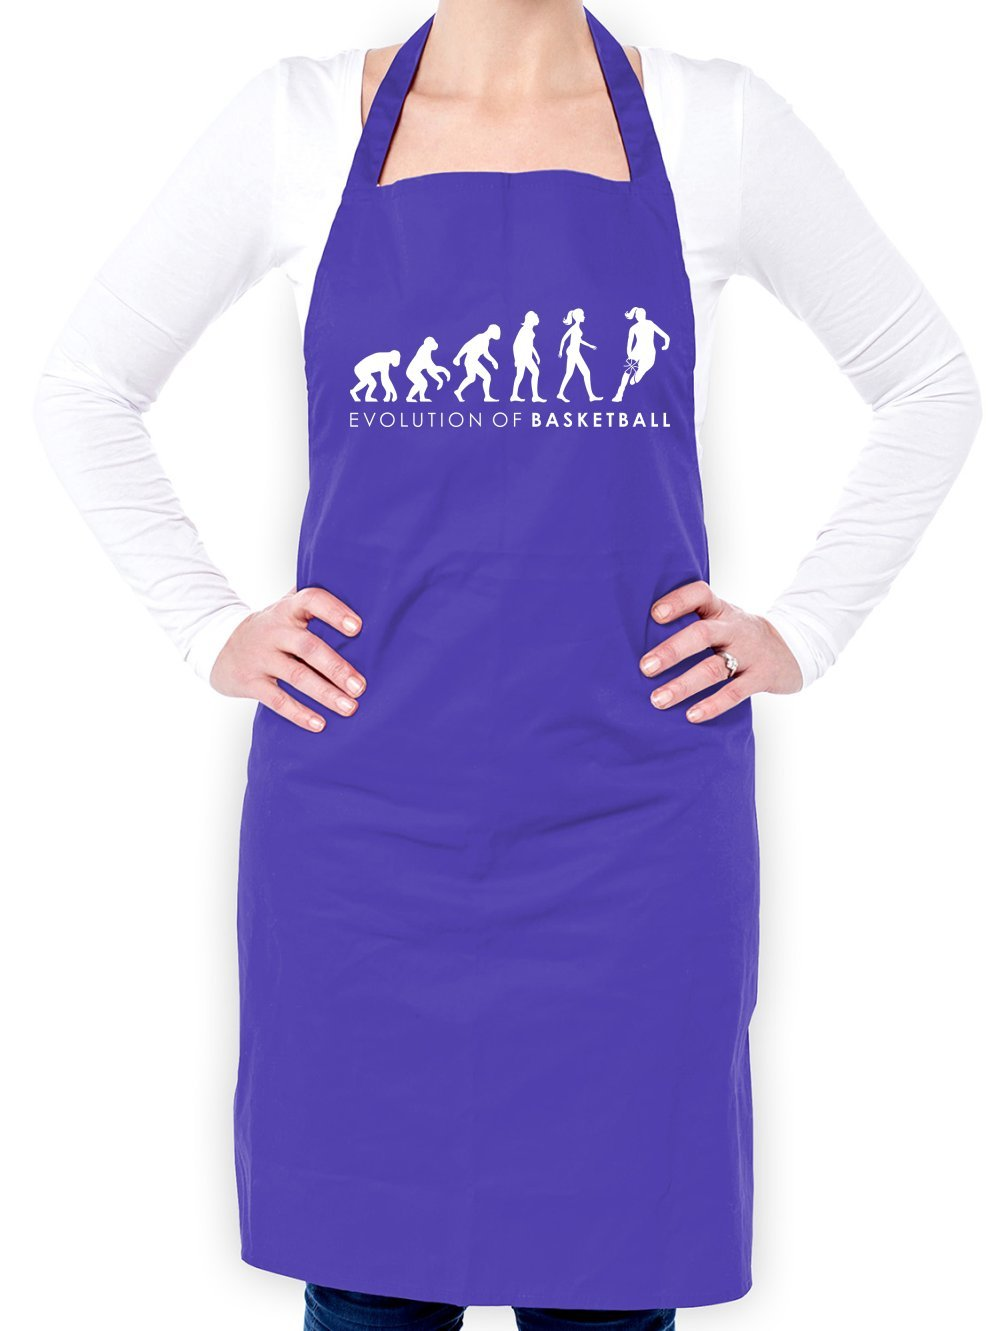 Evolution of Woman - Basketball - Unisex Fit Apron - Purple - One Size